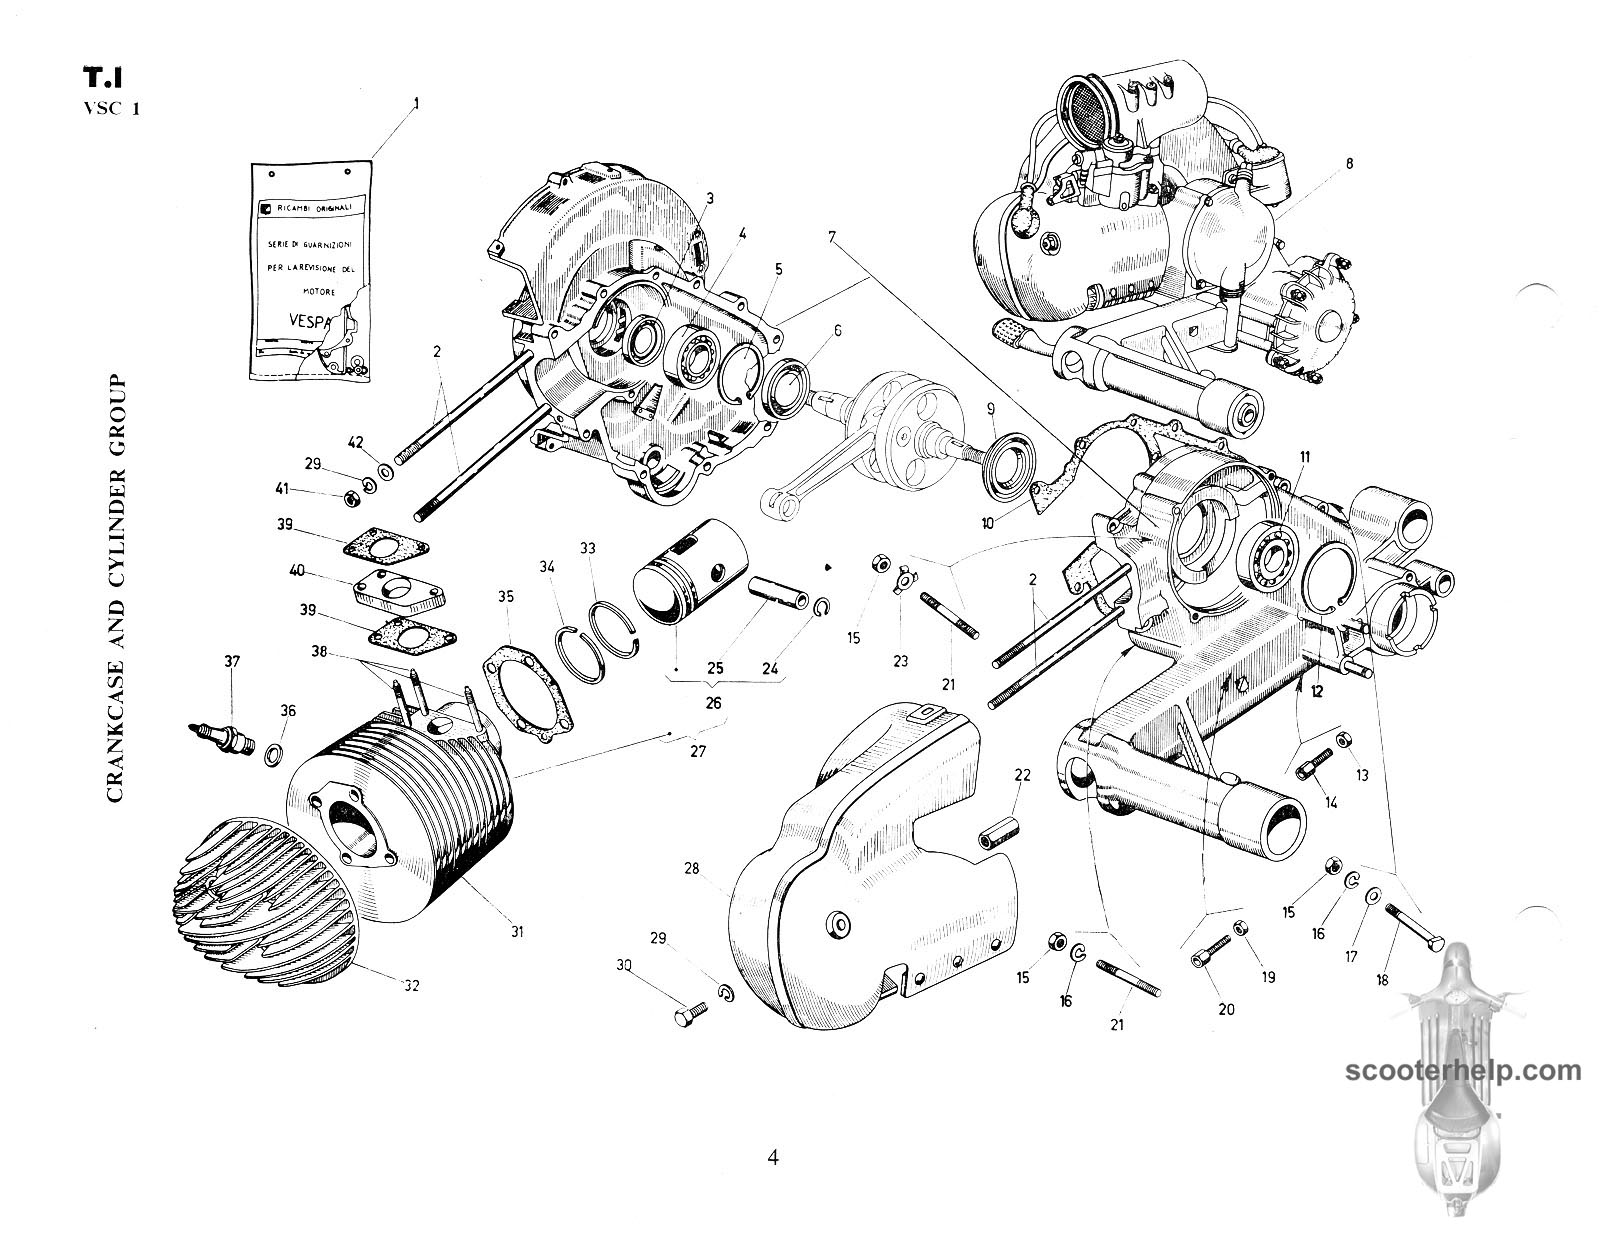 vespa motor diagram great installation of wiring diagram Audio Wiring Junction Box vespa parts diagram wiring diagram for you rh 15 19 5 carrera rennwelt de vespa engine diagram scooter electrical diagram